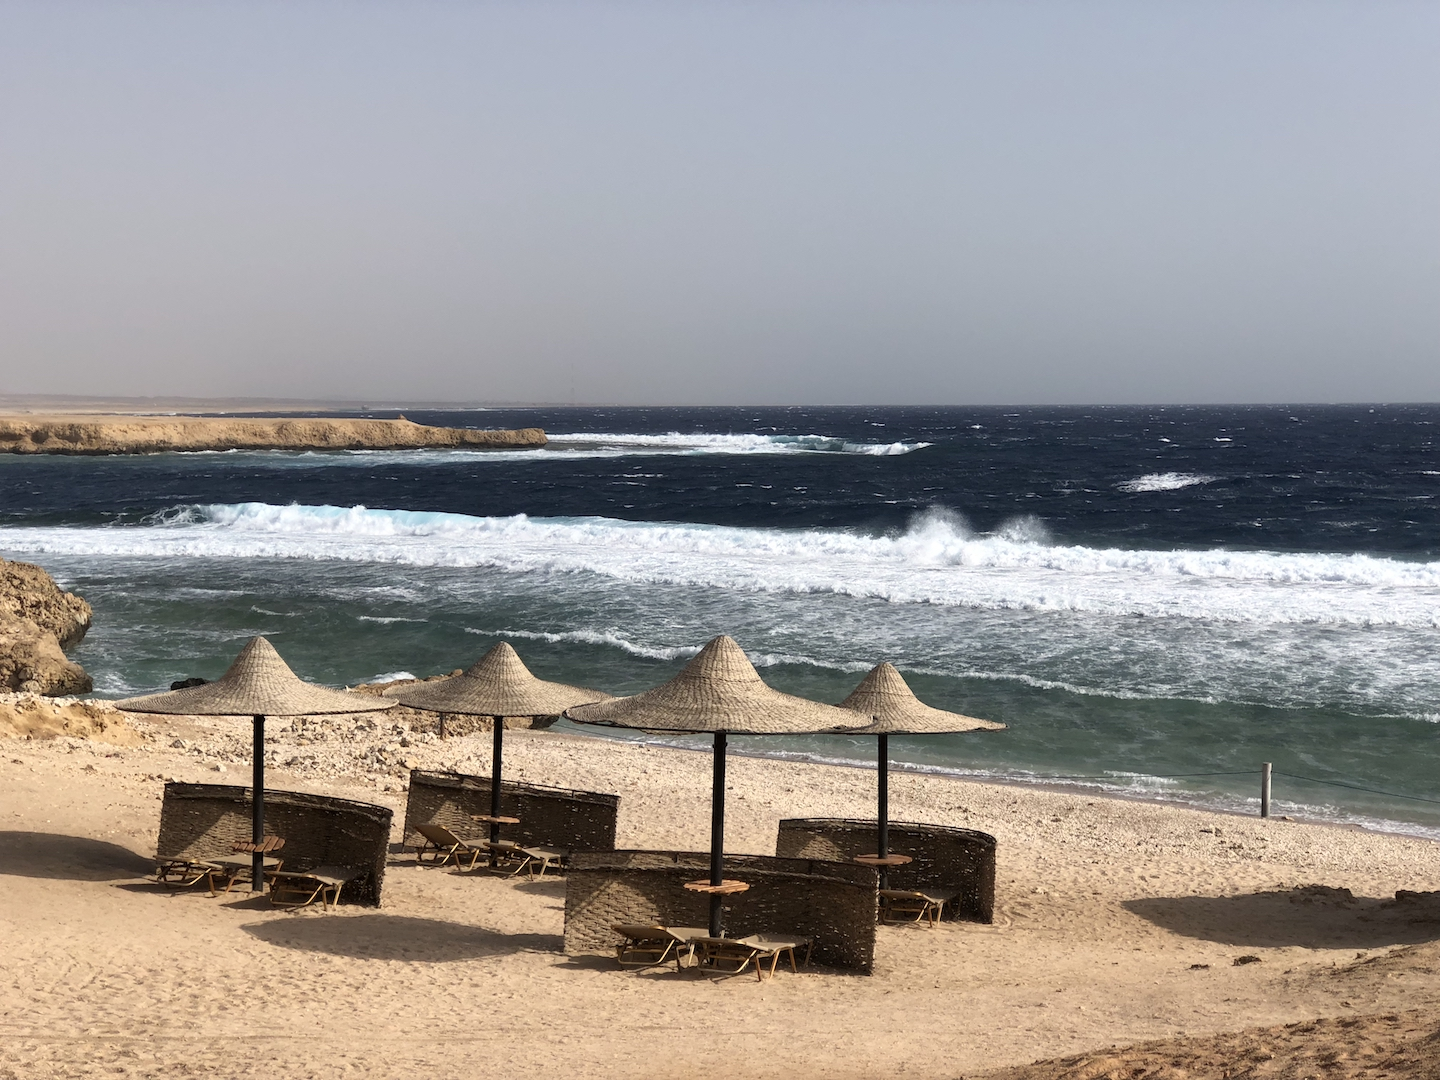 Jaz Samaya, (Marsa Alam) Jun.-Jul. 2018